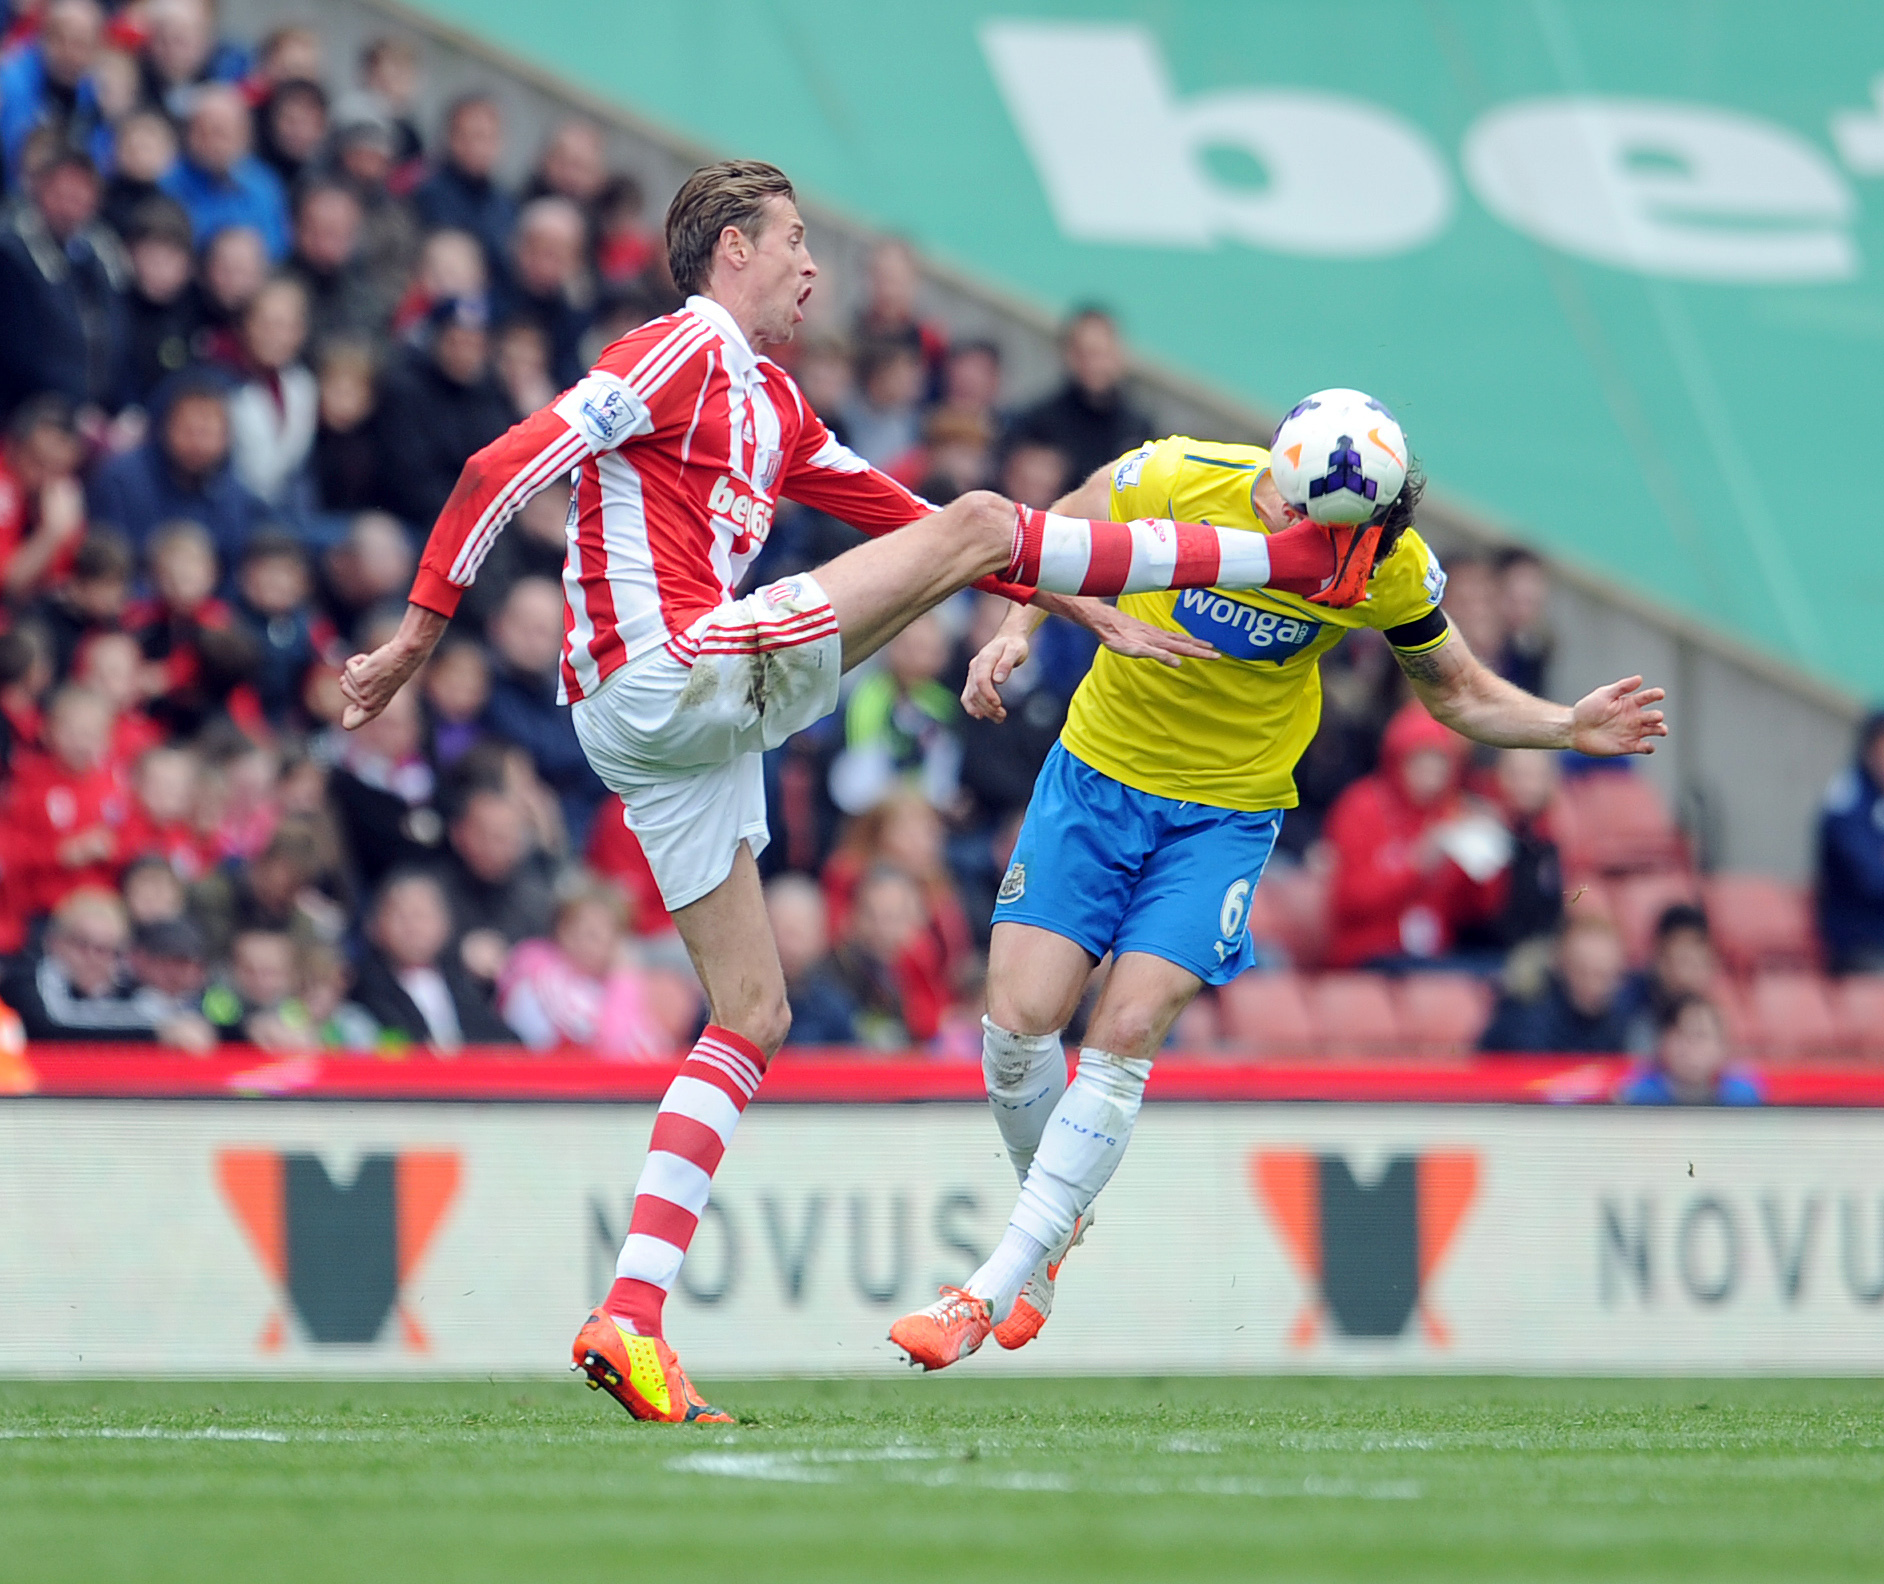 OUCH FROM CROUCH: Stoke's high-stepping striker Peter Crouch gives Newcastle's Mike Williamson a headache